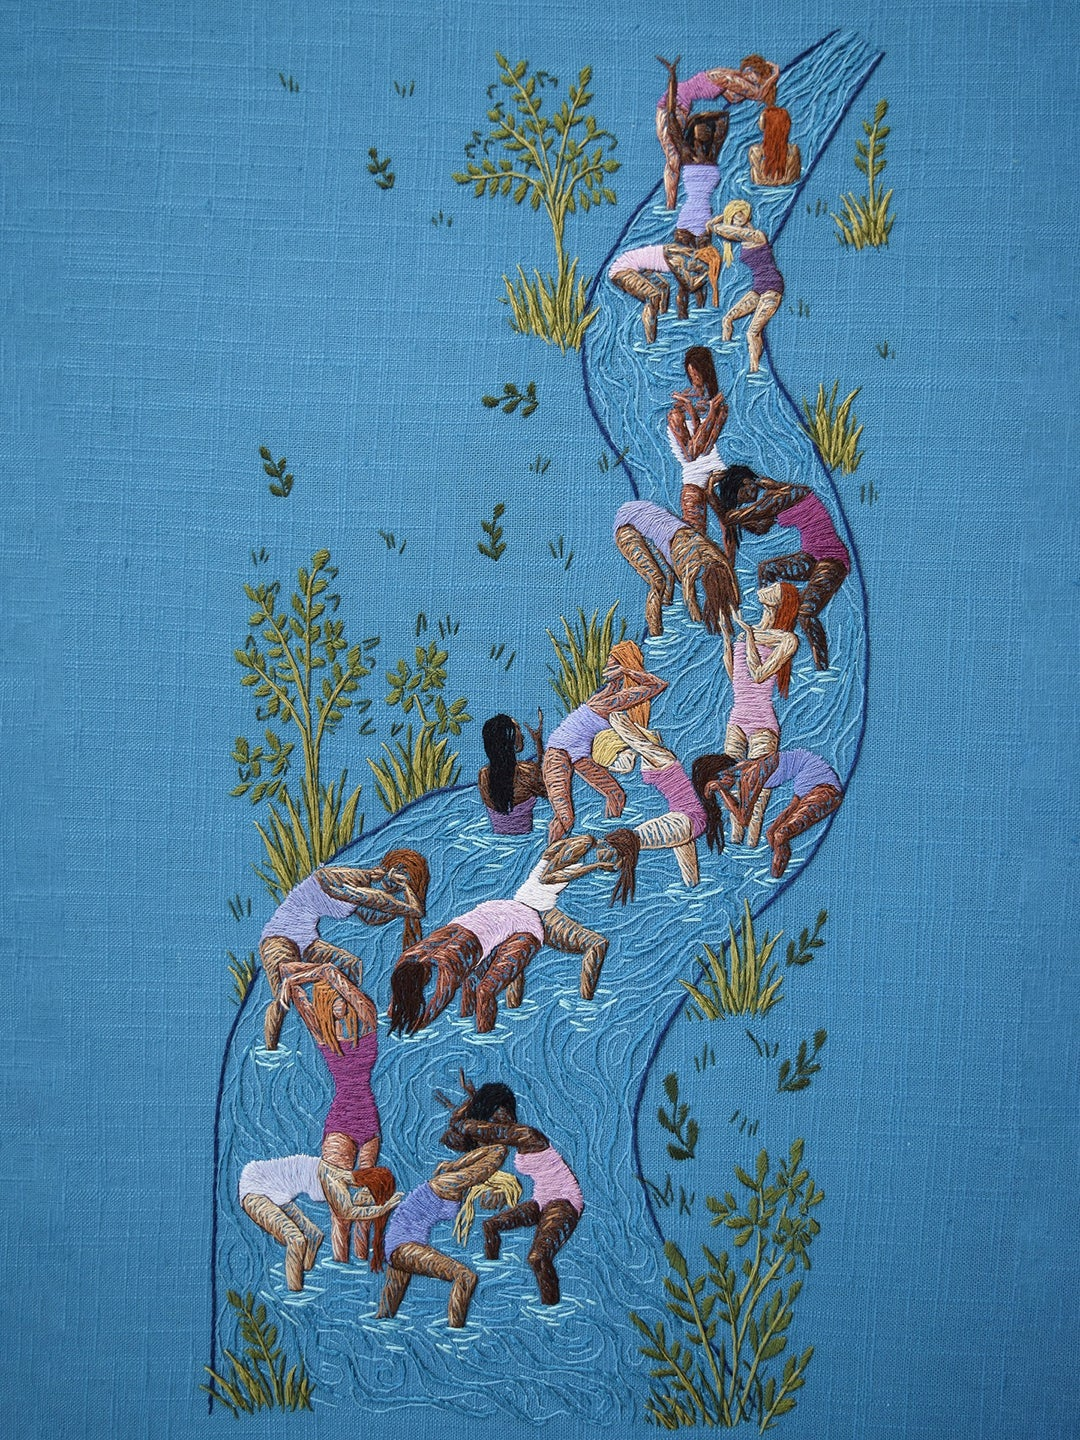 Embroidery art of women in a stream